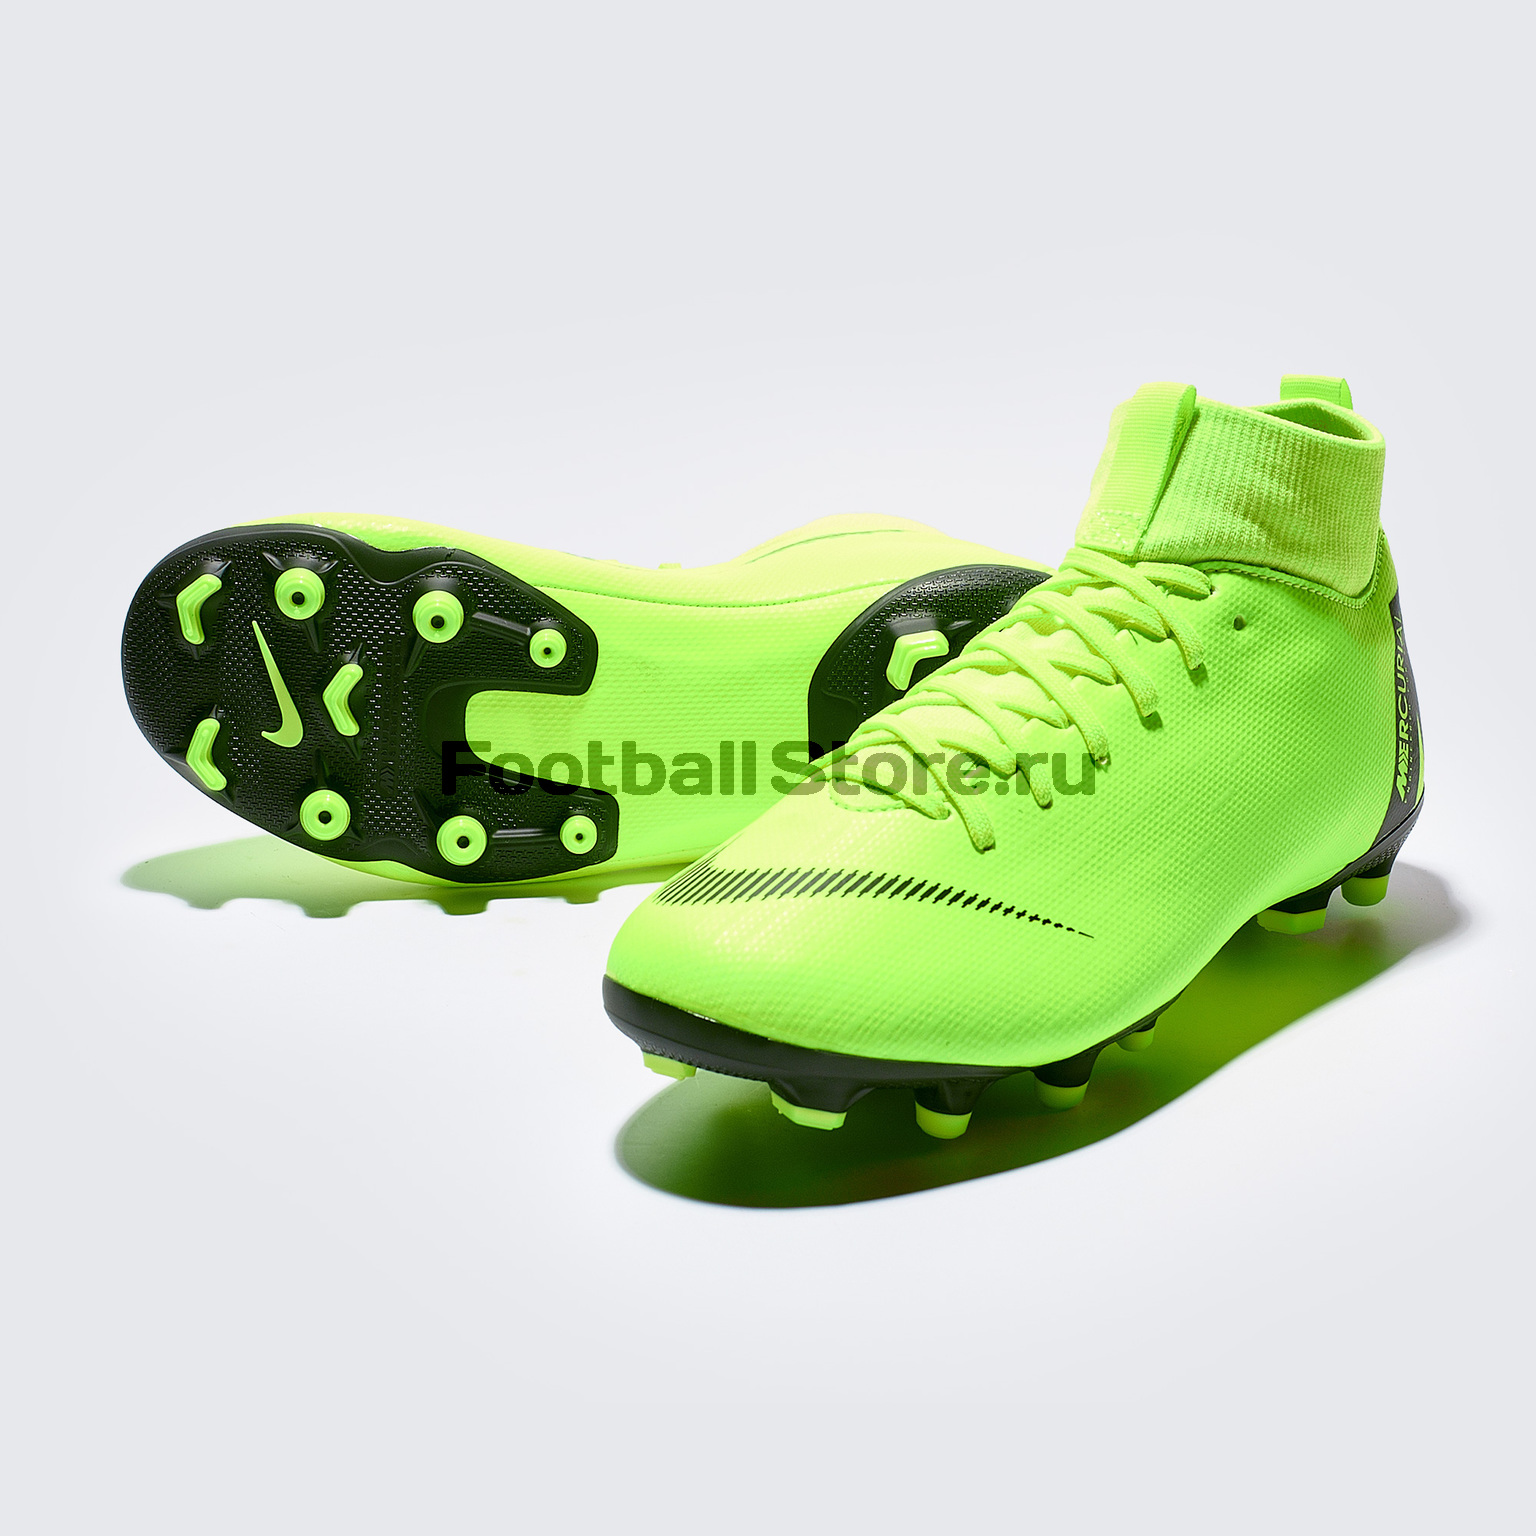 Бутсы детские Nike Superfly 6 Academy GS FG/MG AH7337-701 бутсы детские nike superfly academy gs cr7 fg mg aj3111 600